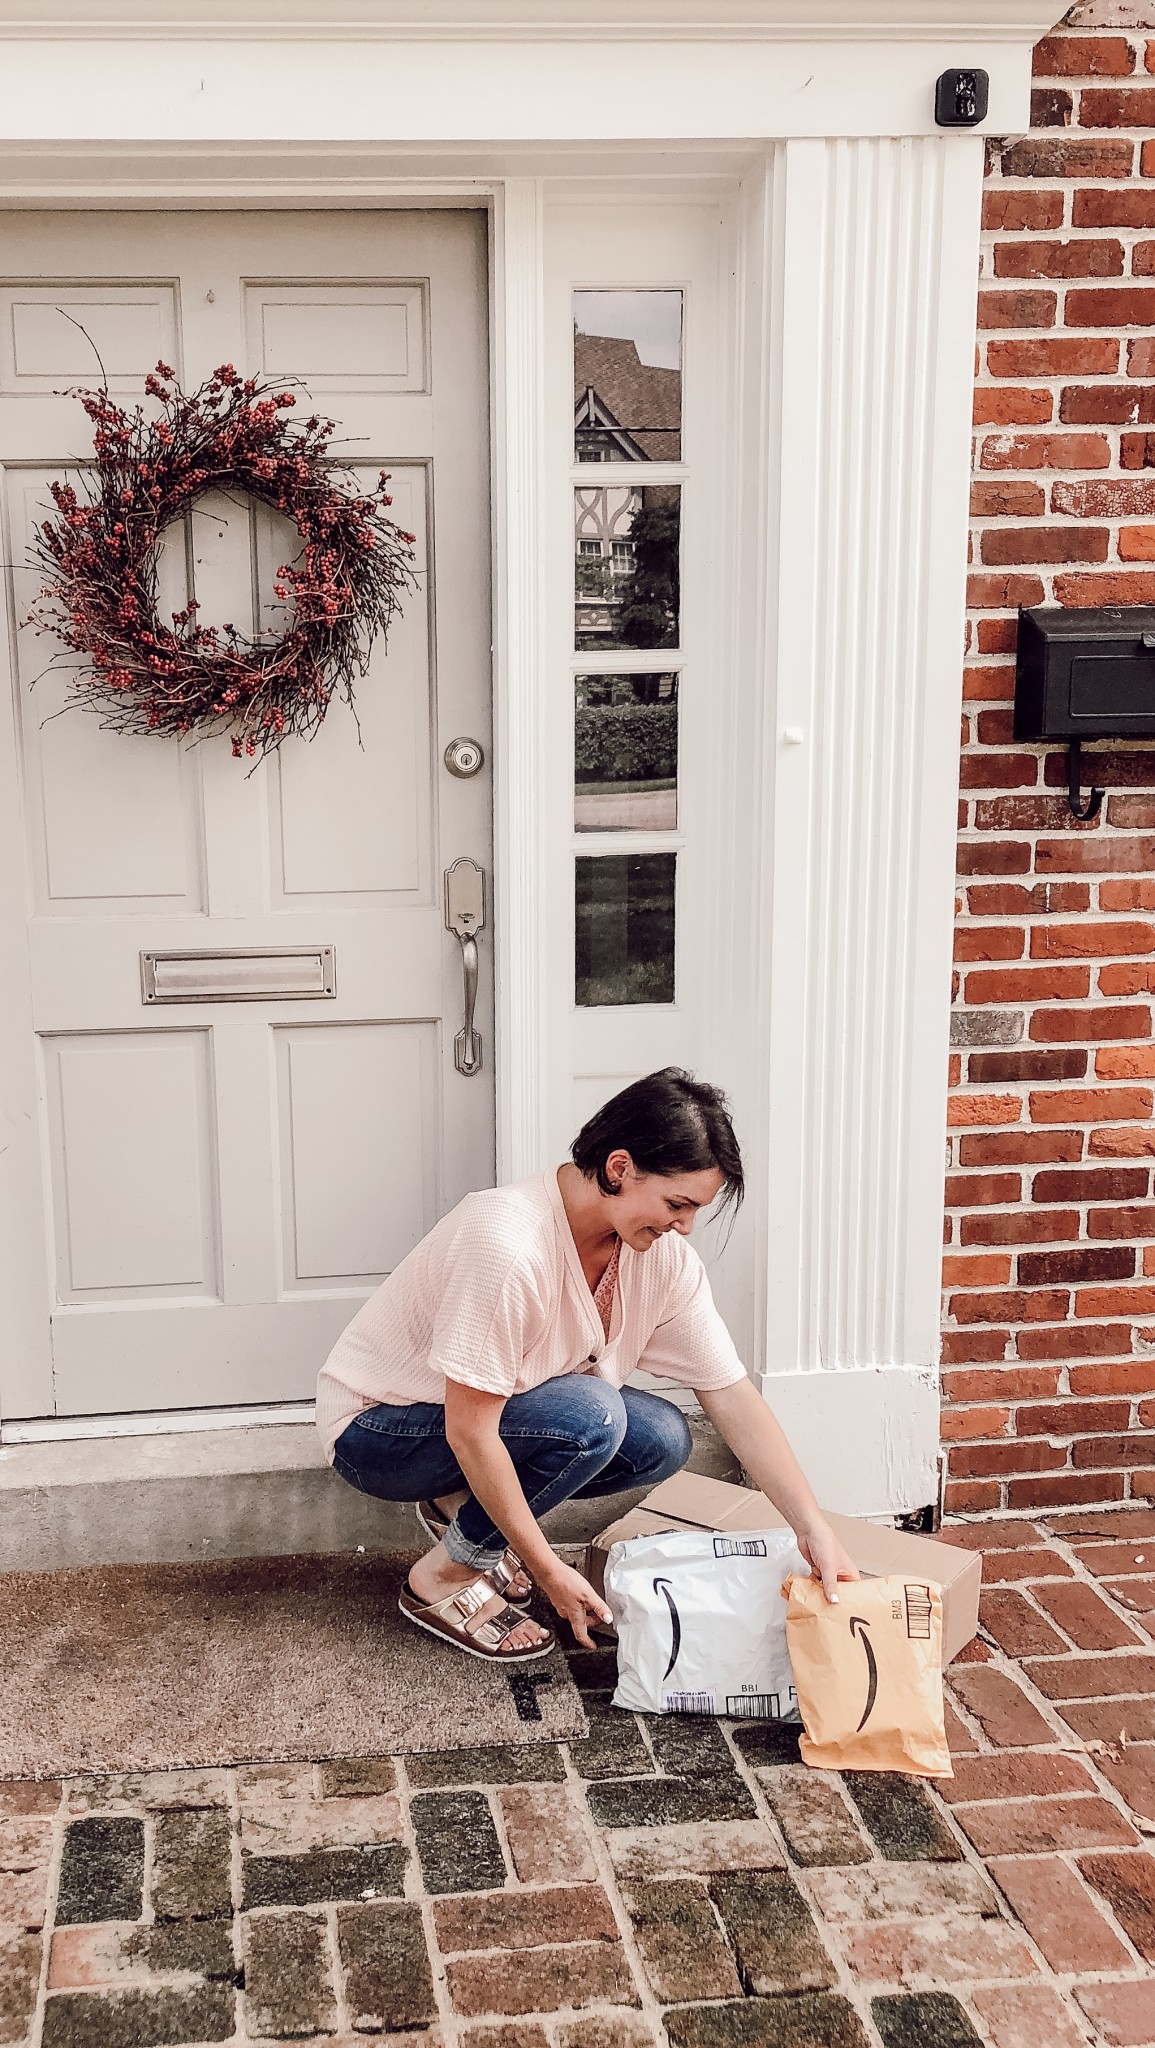 how to protect your packages with Blink home security system